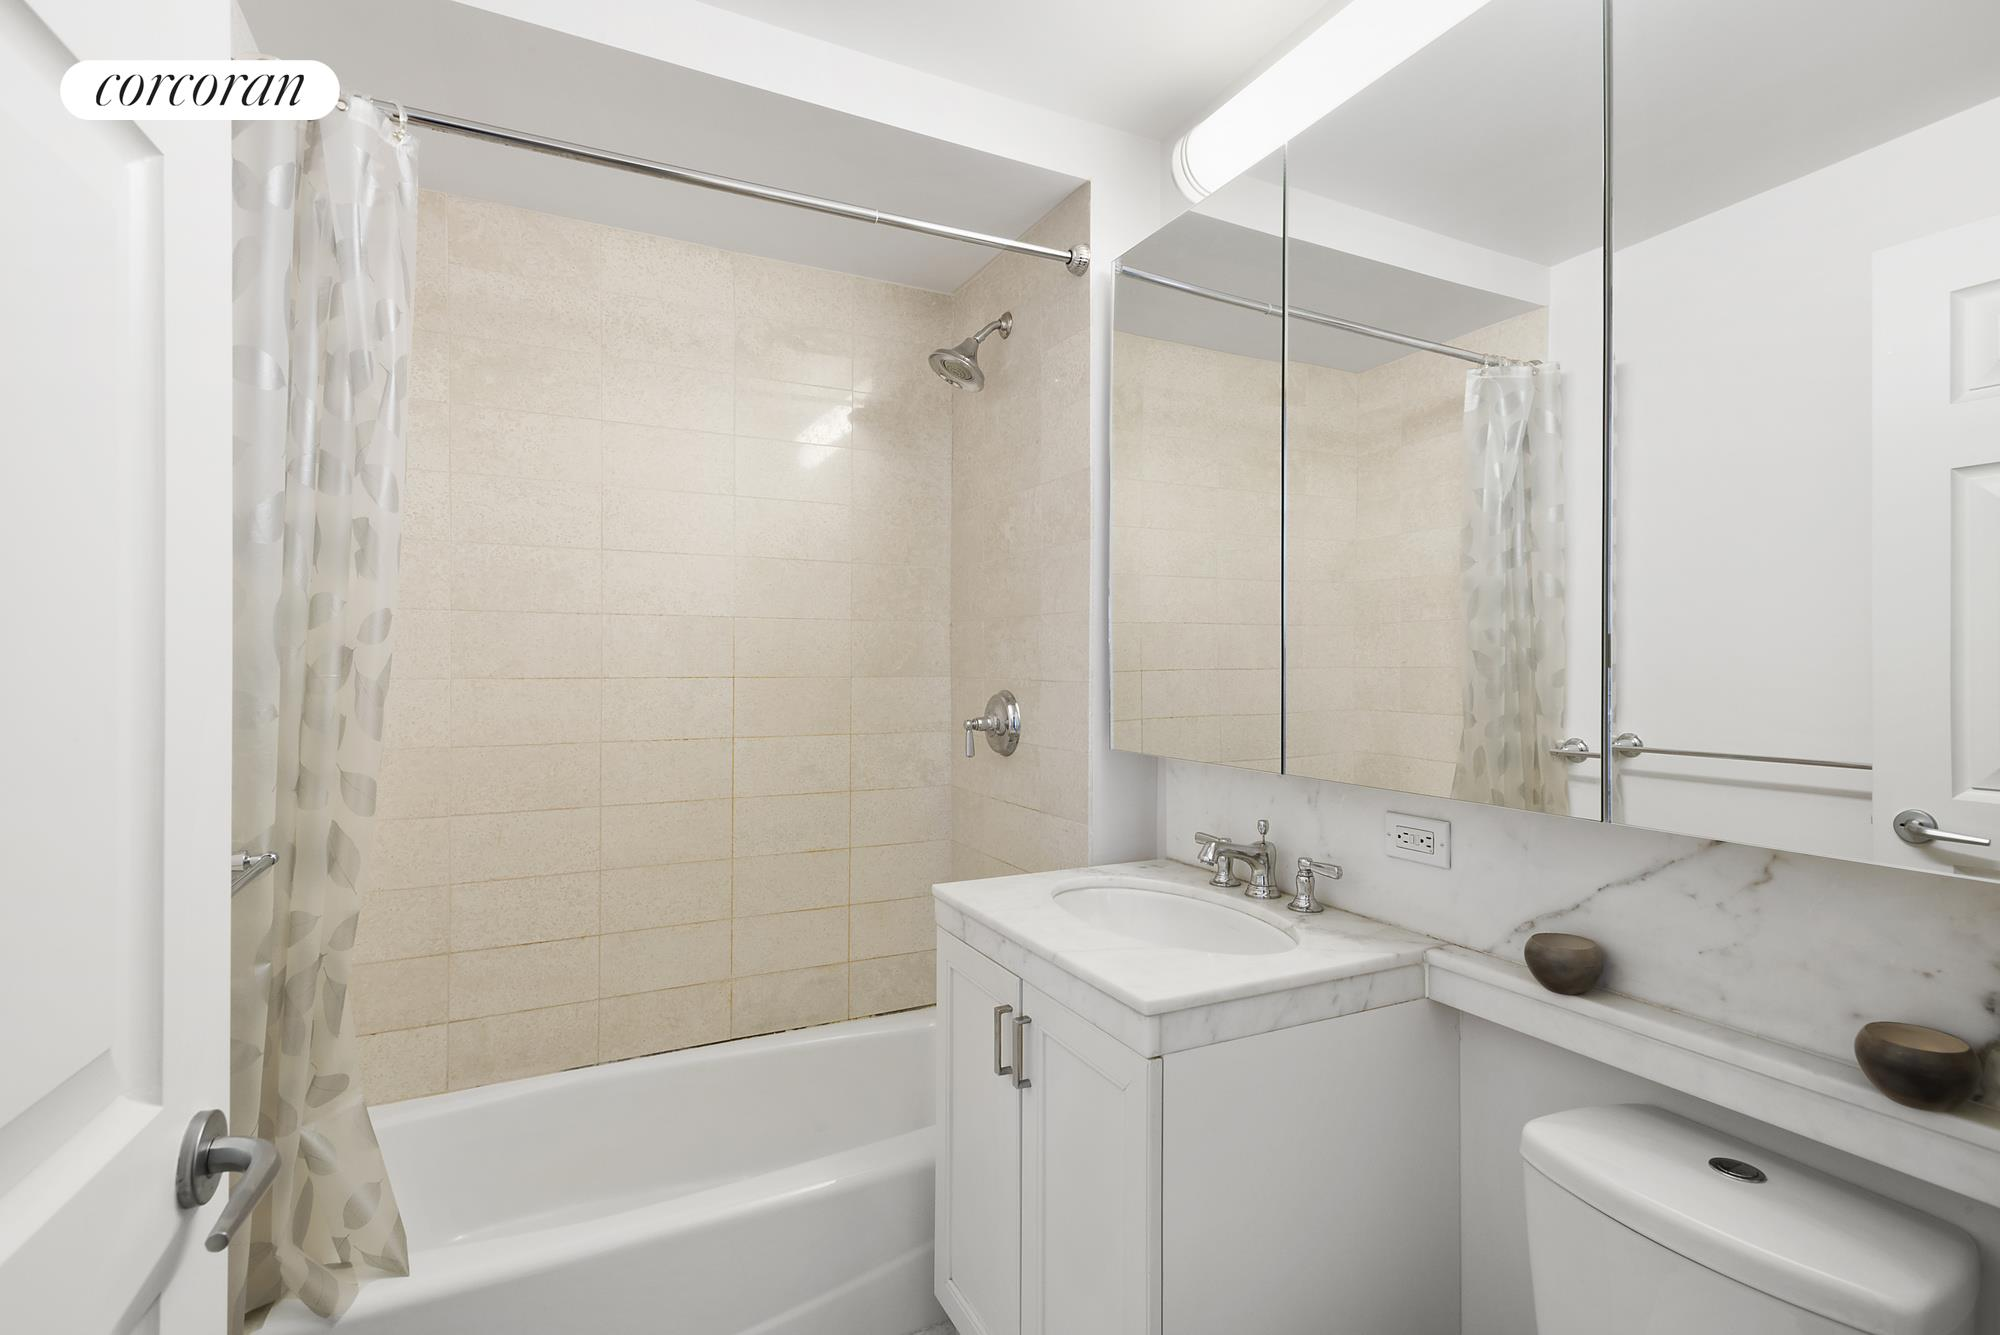 205 East 85th Street, 8A, Luxurious materials and finishes